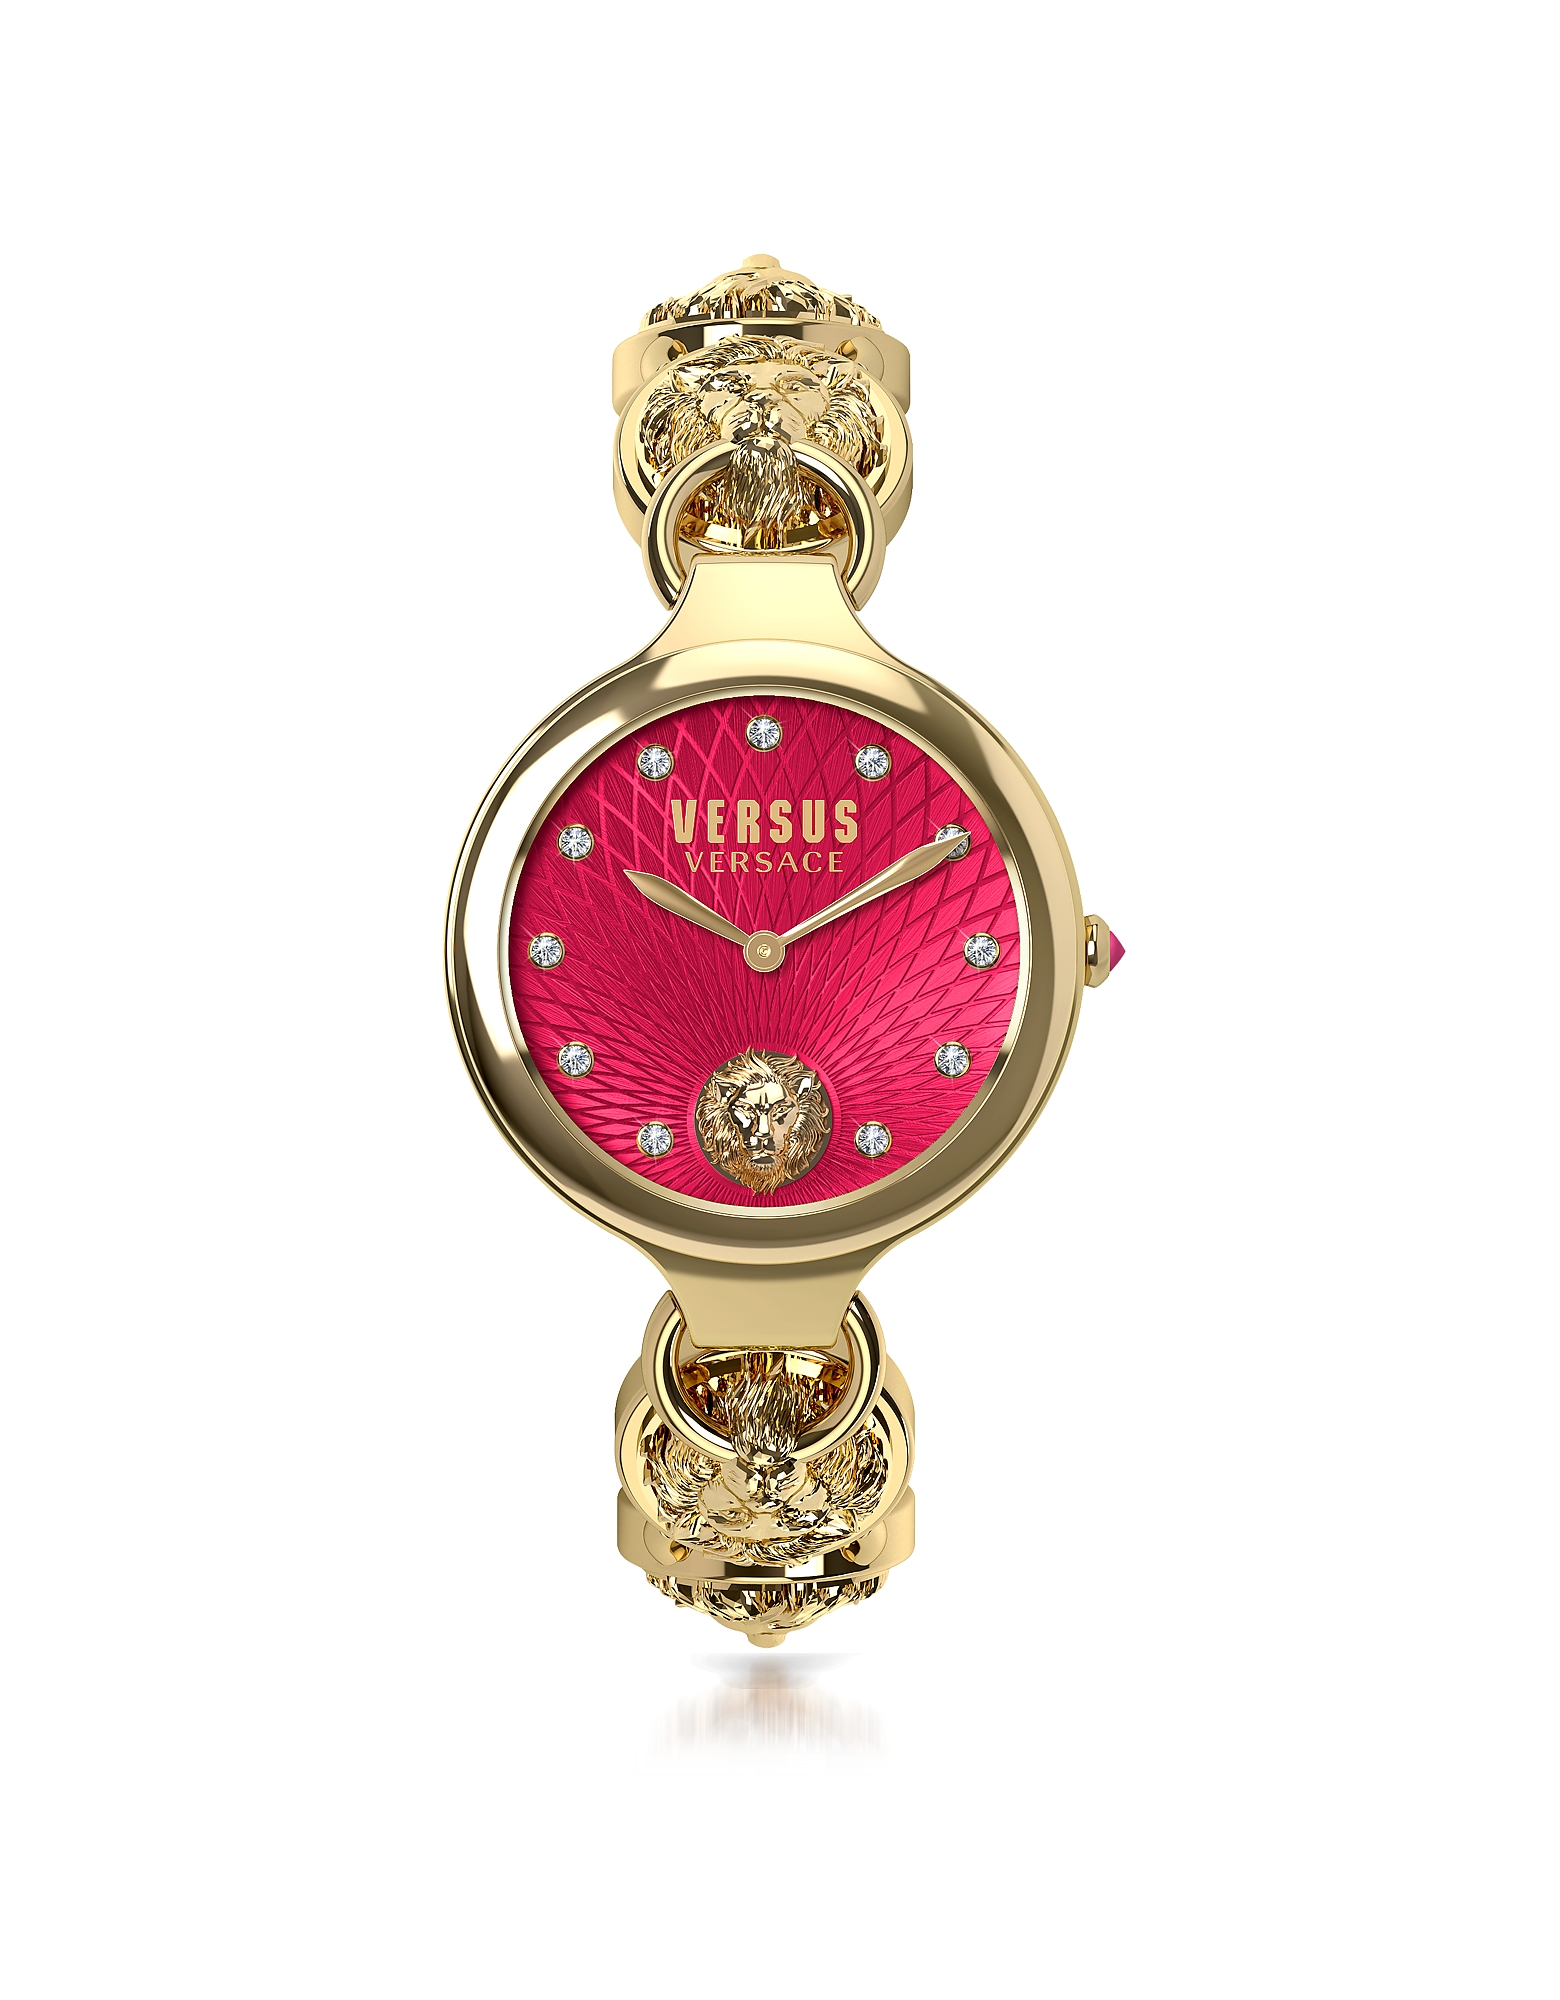 Broadwood Gold Tone Stainless Steel Women's Bracelet Watch w/Red Dial and Crystals